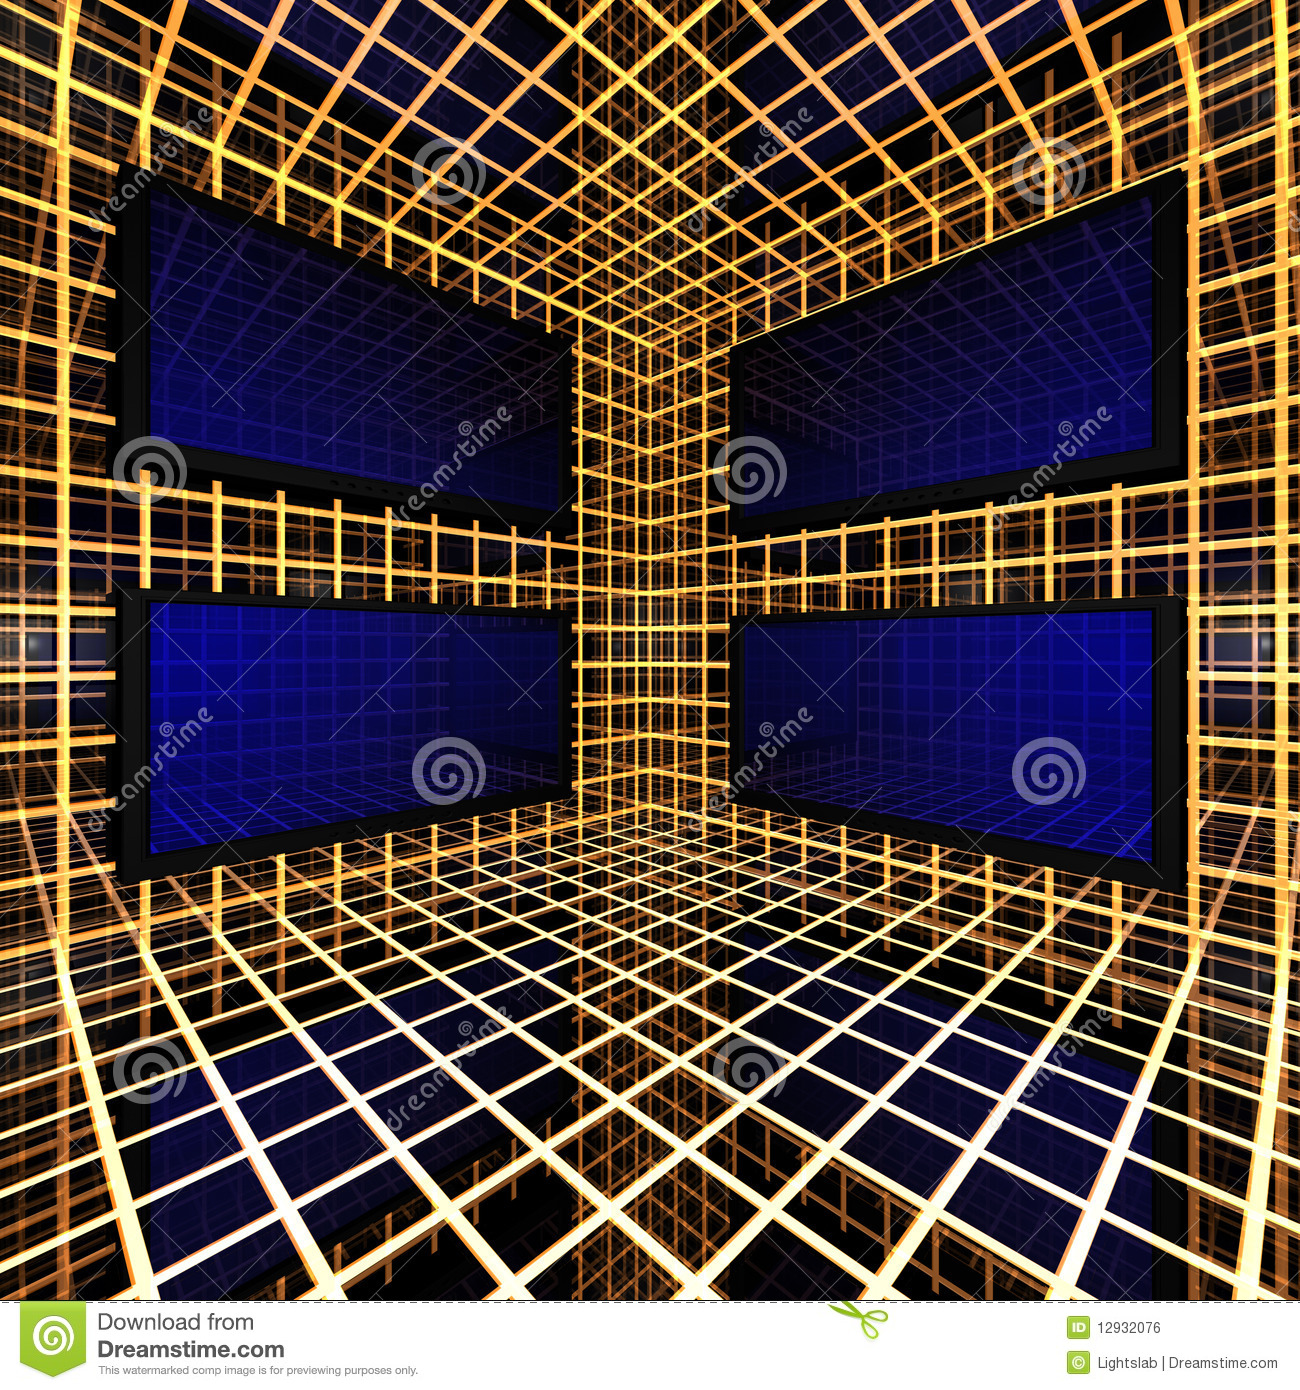 Monitors in grid room royalty free stock image image for Grid room